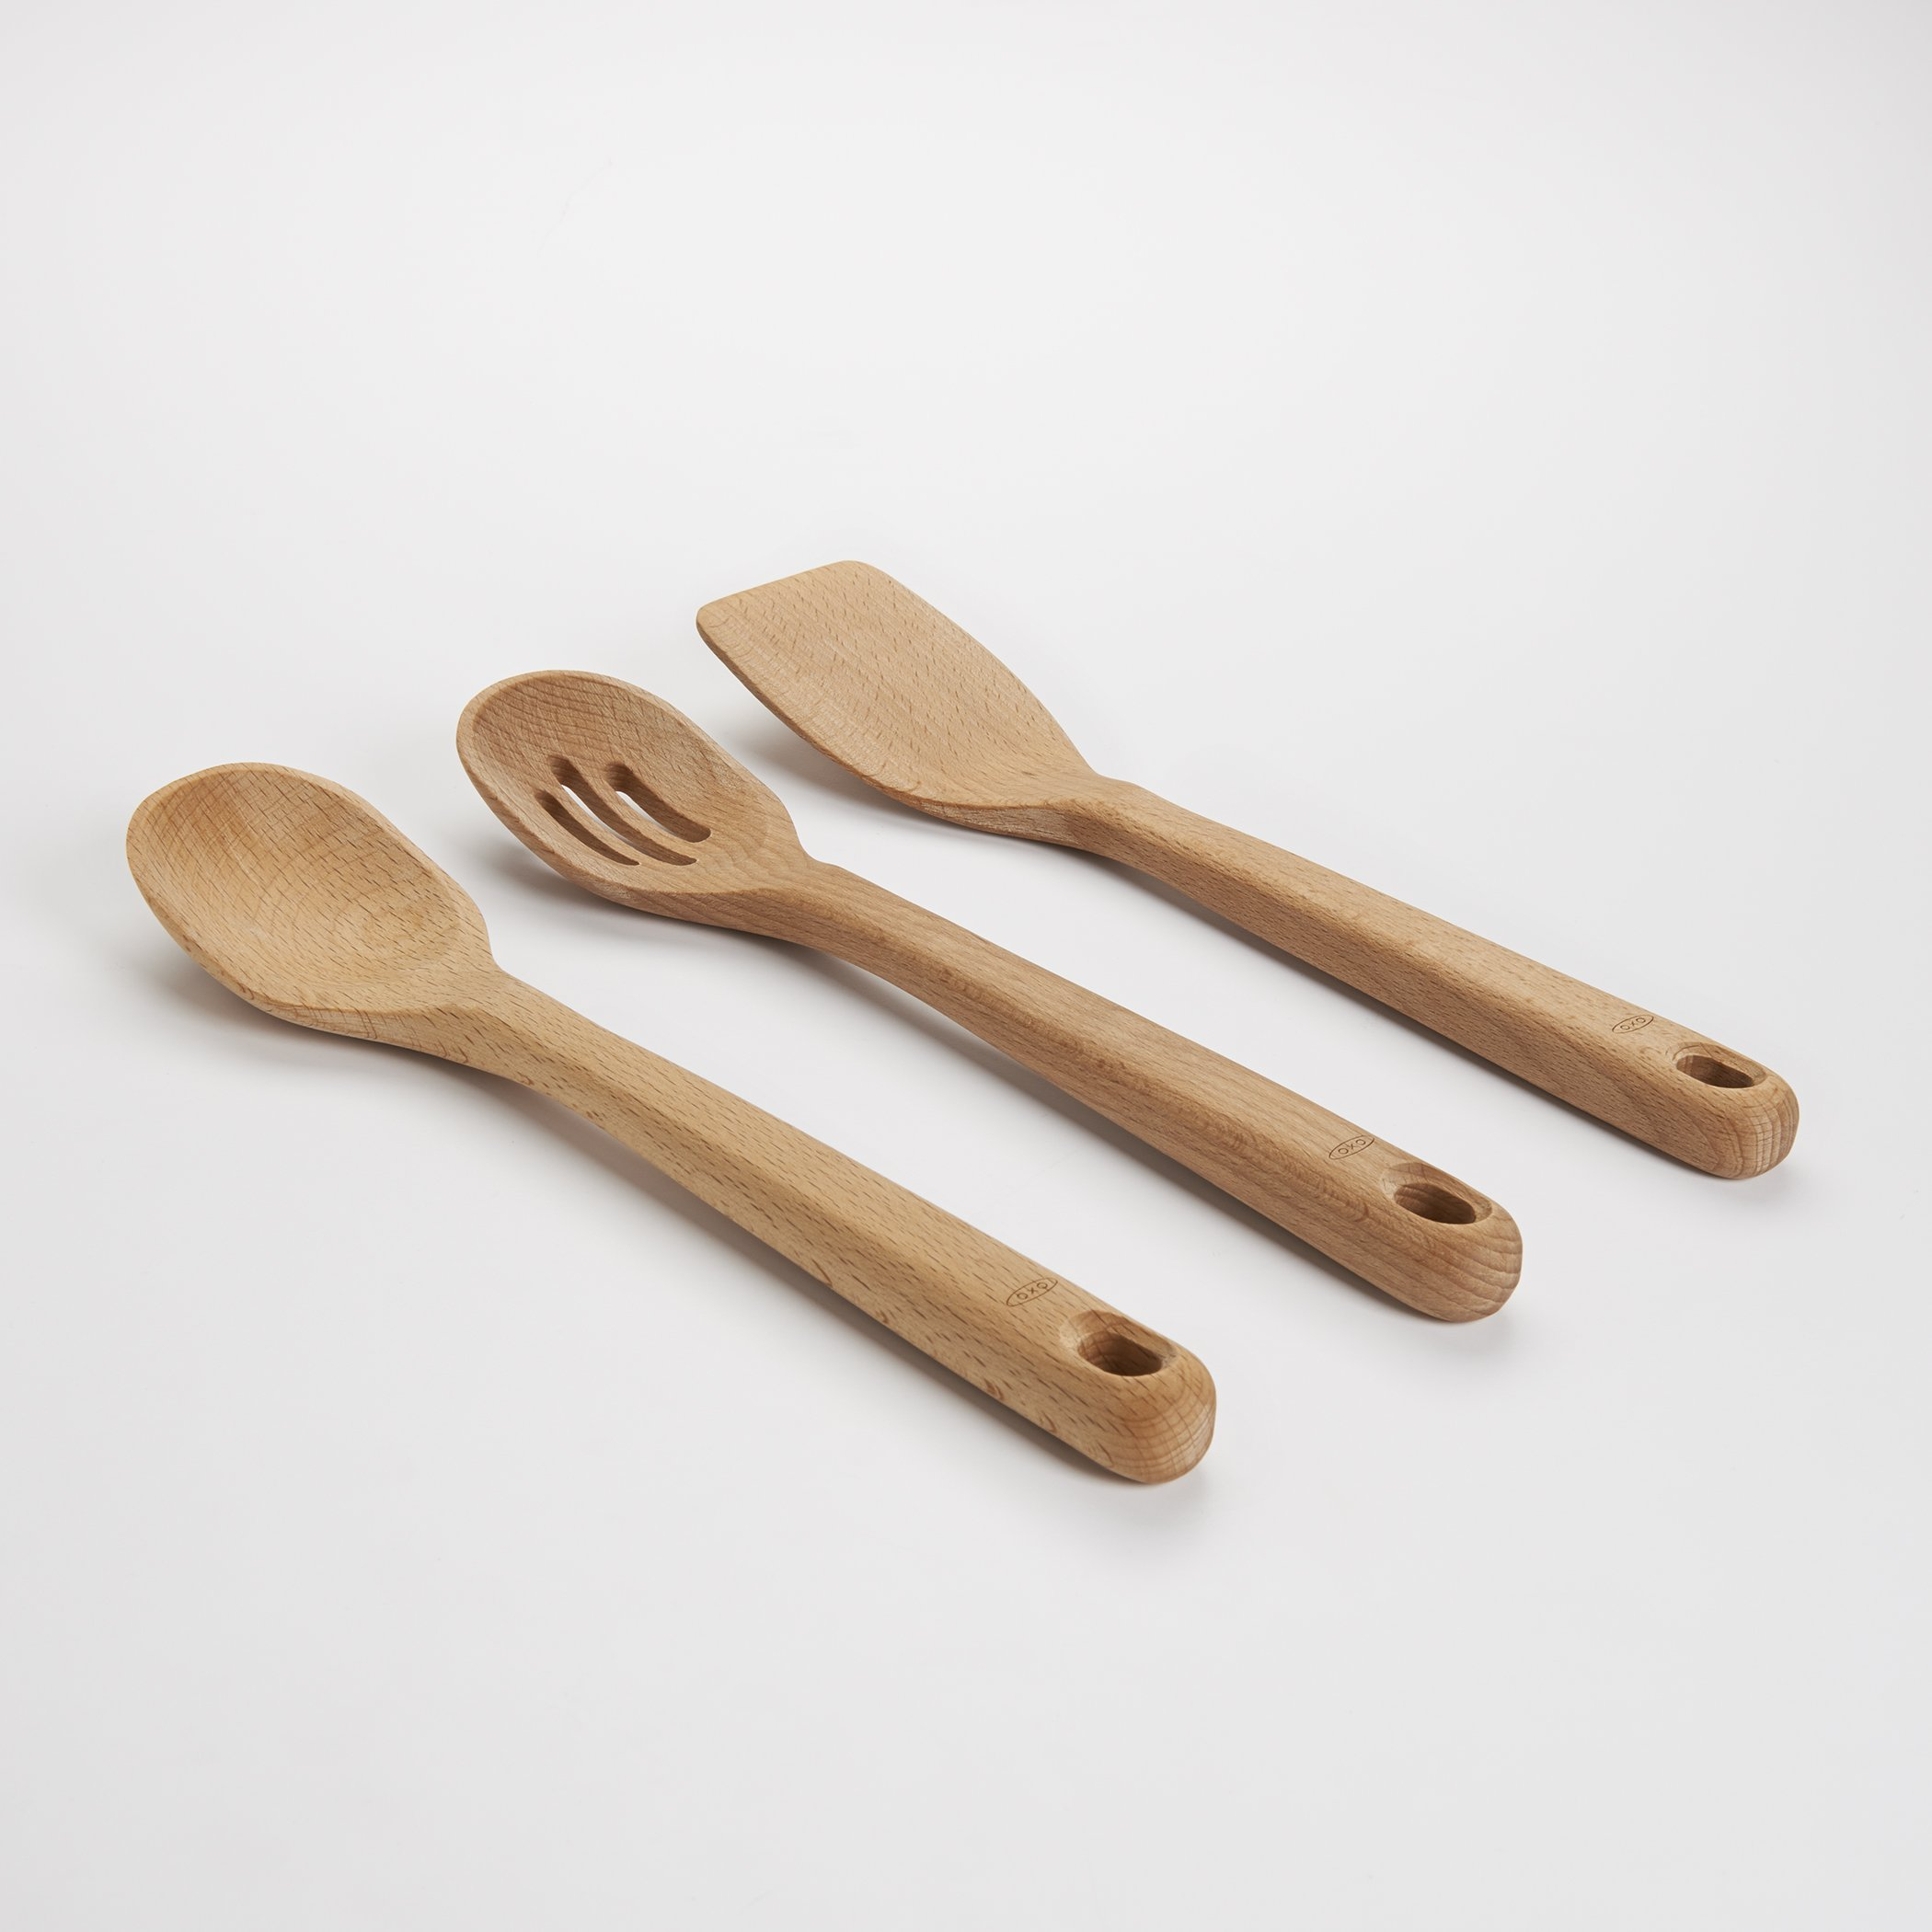 OXO Good Grips 3-Piece Utensil Set by OXO (Image #2)